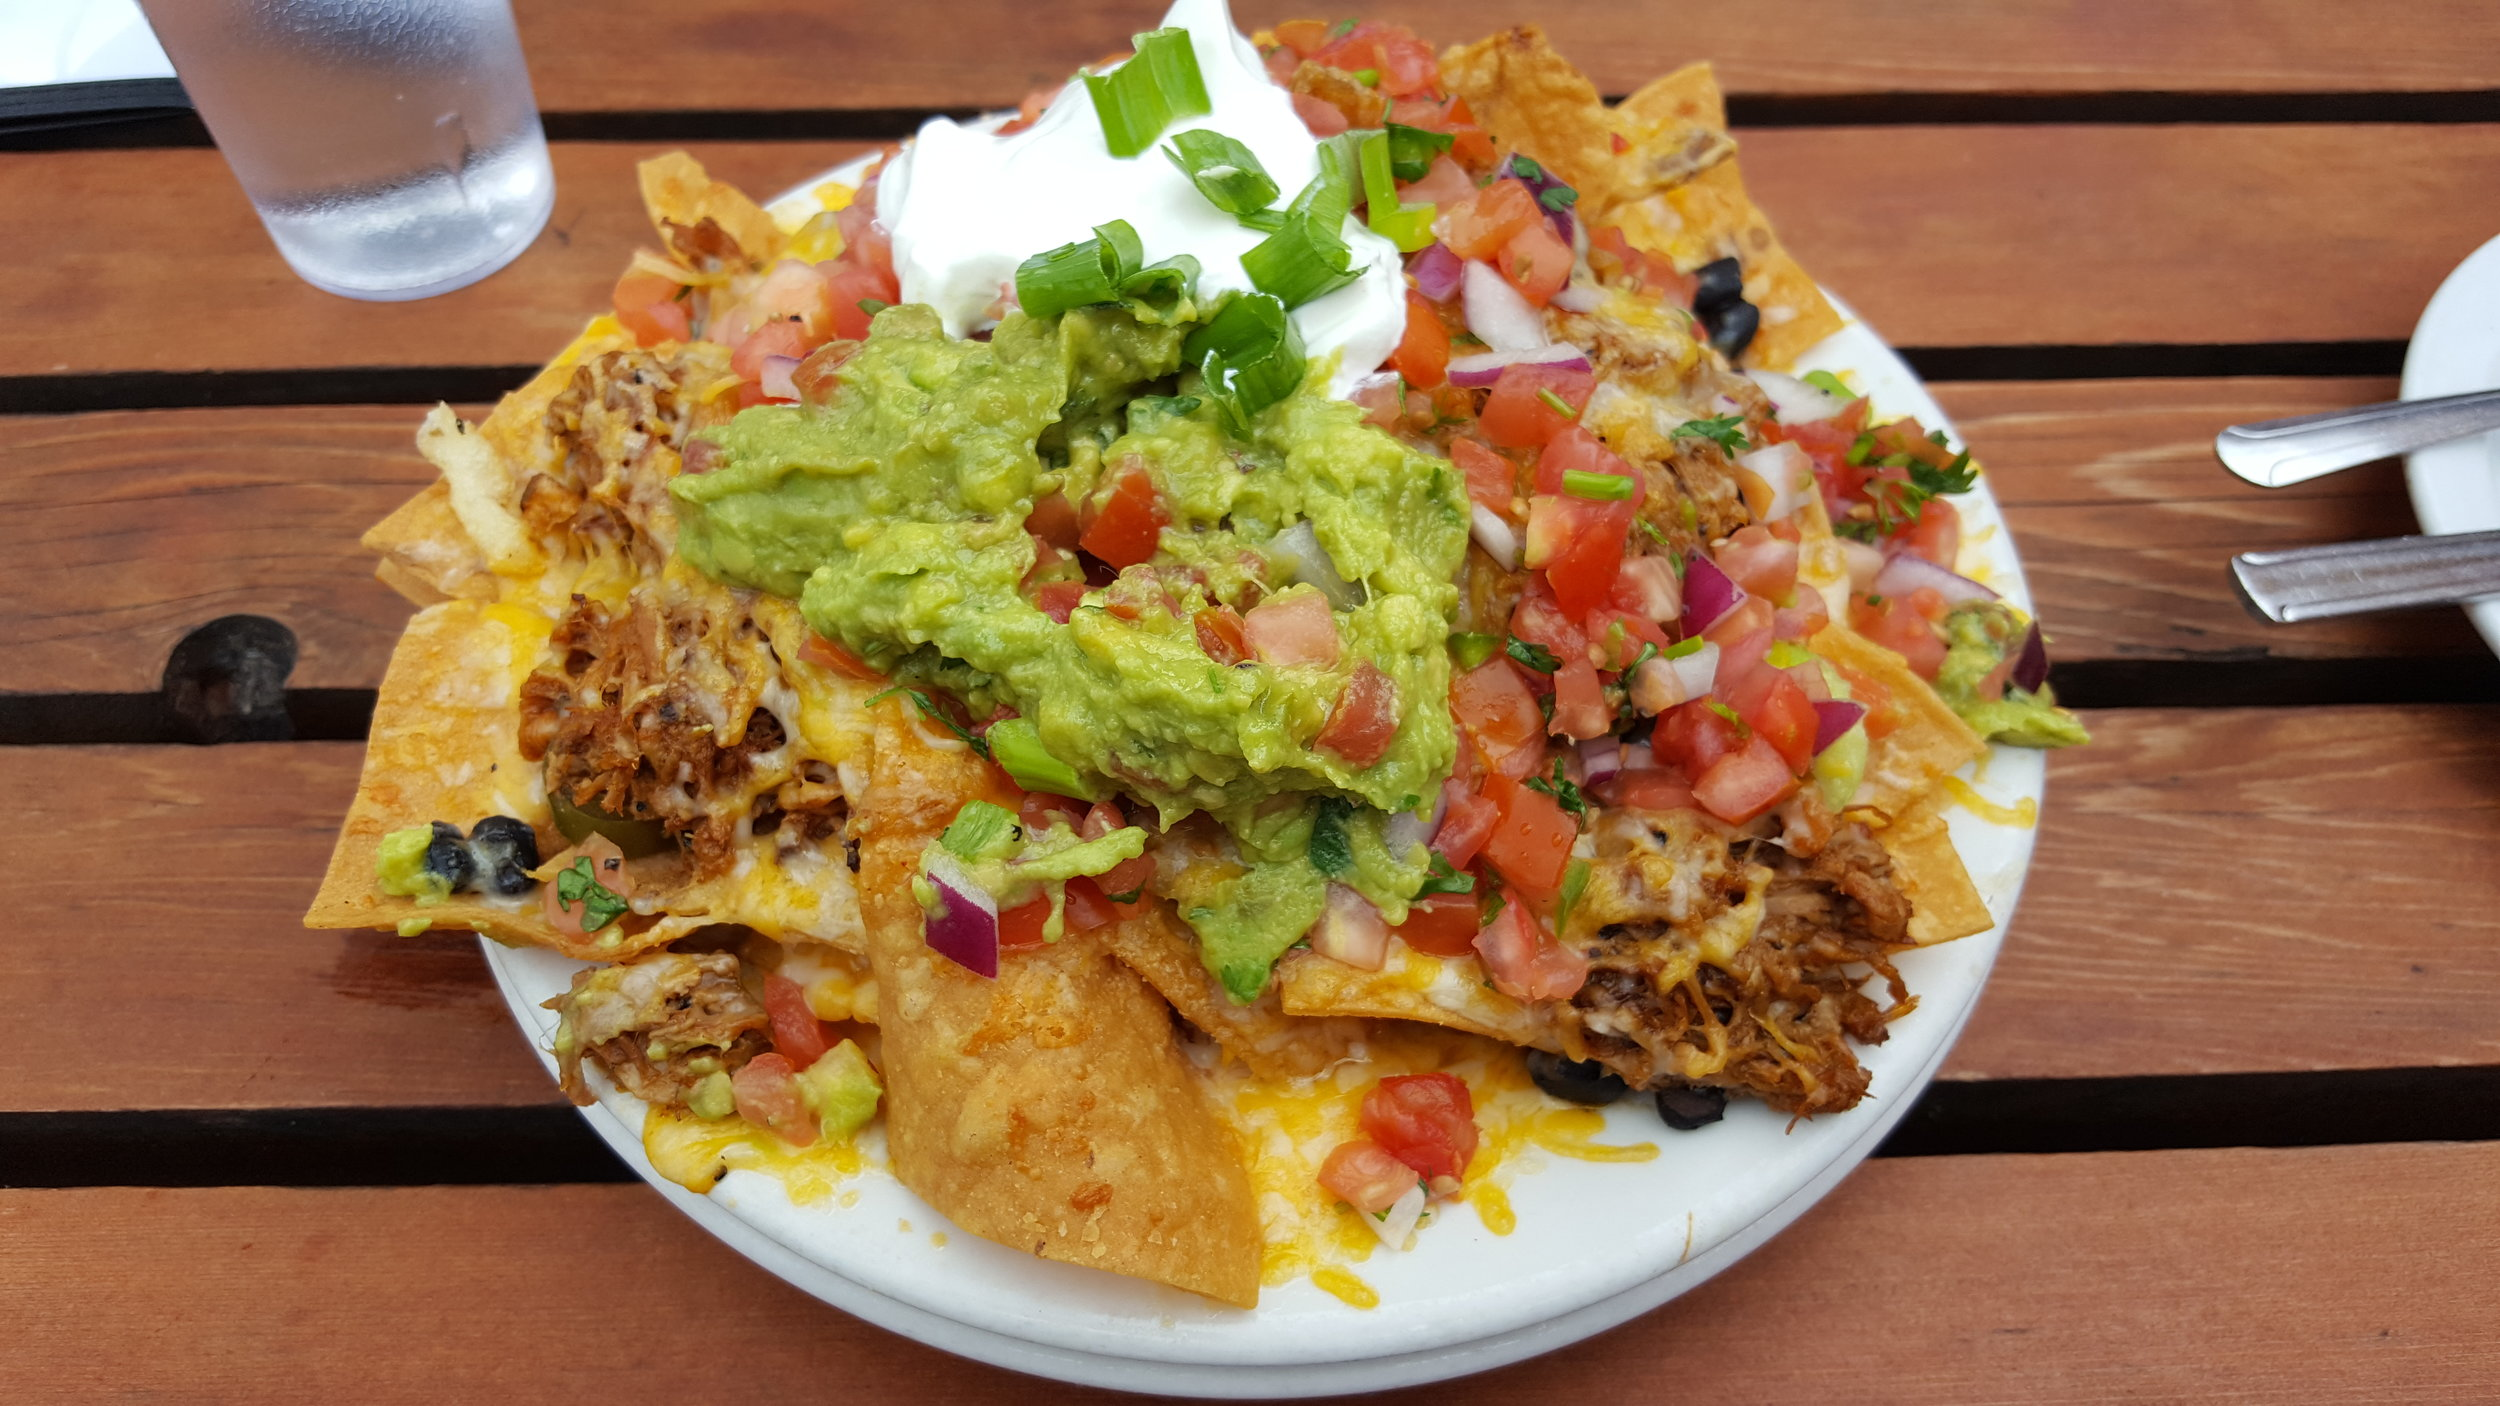 Cheddar and Jack Cheeses, Pico de Gallo, Black Beans, Pickled Jalapenos, Guacamole, Sour Cream, Pulled Pork